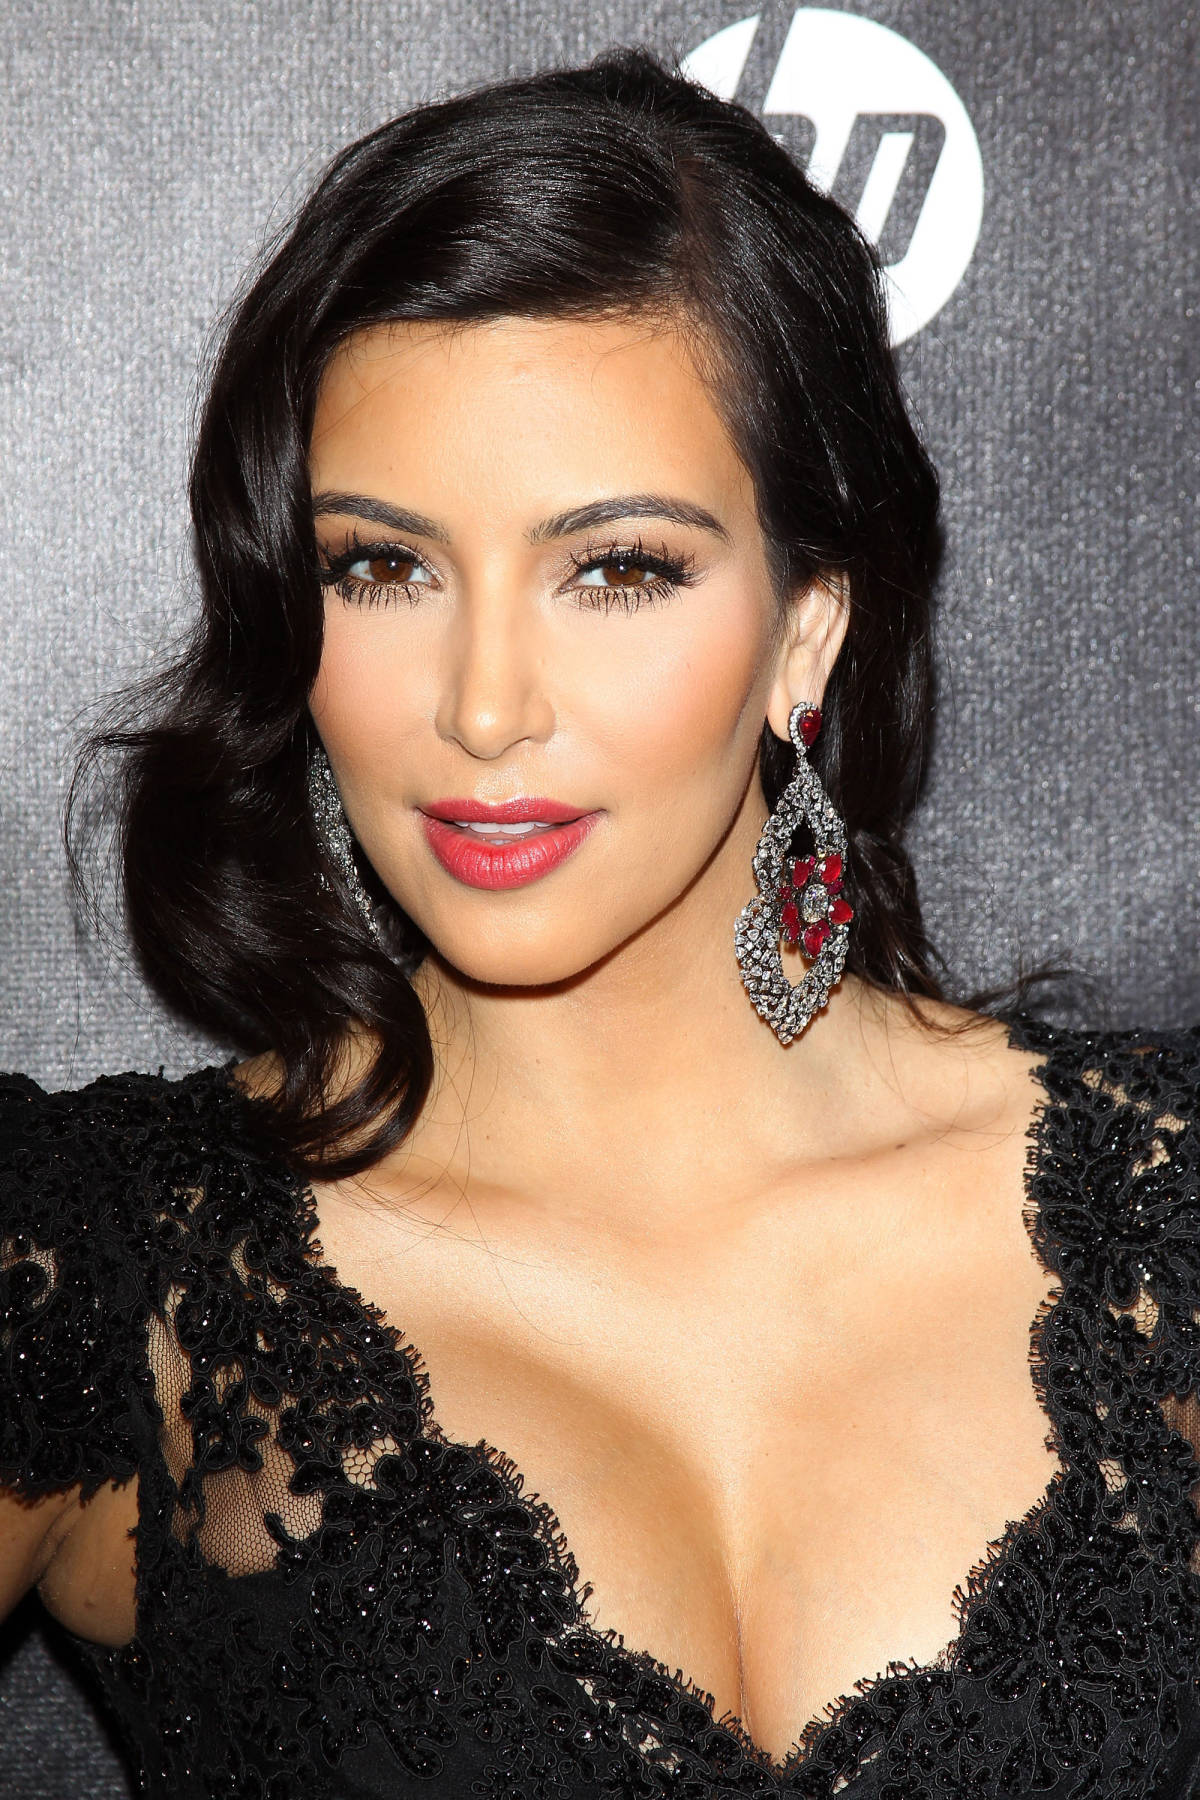 Kim Kardashian Wedding Hair Ideas - Wedding Hair Ideas Kim Kardashian